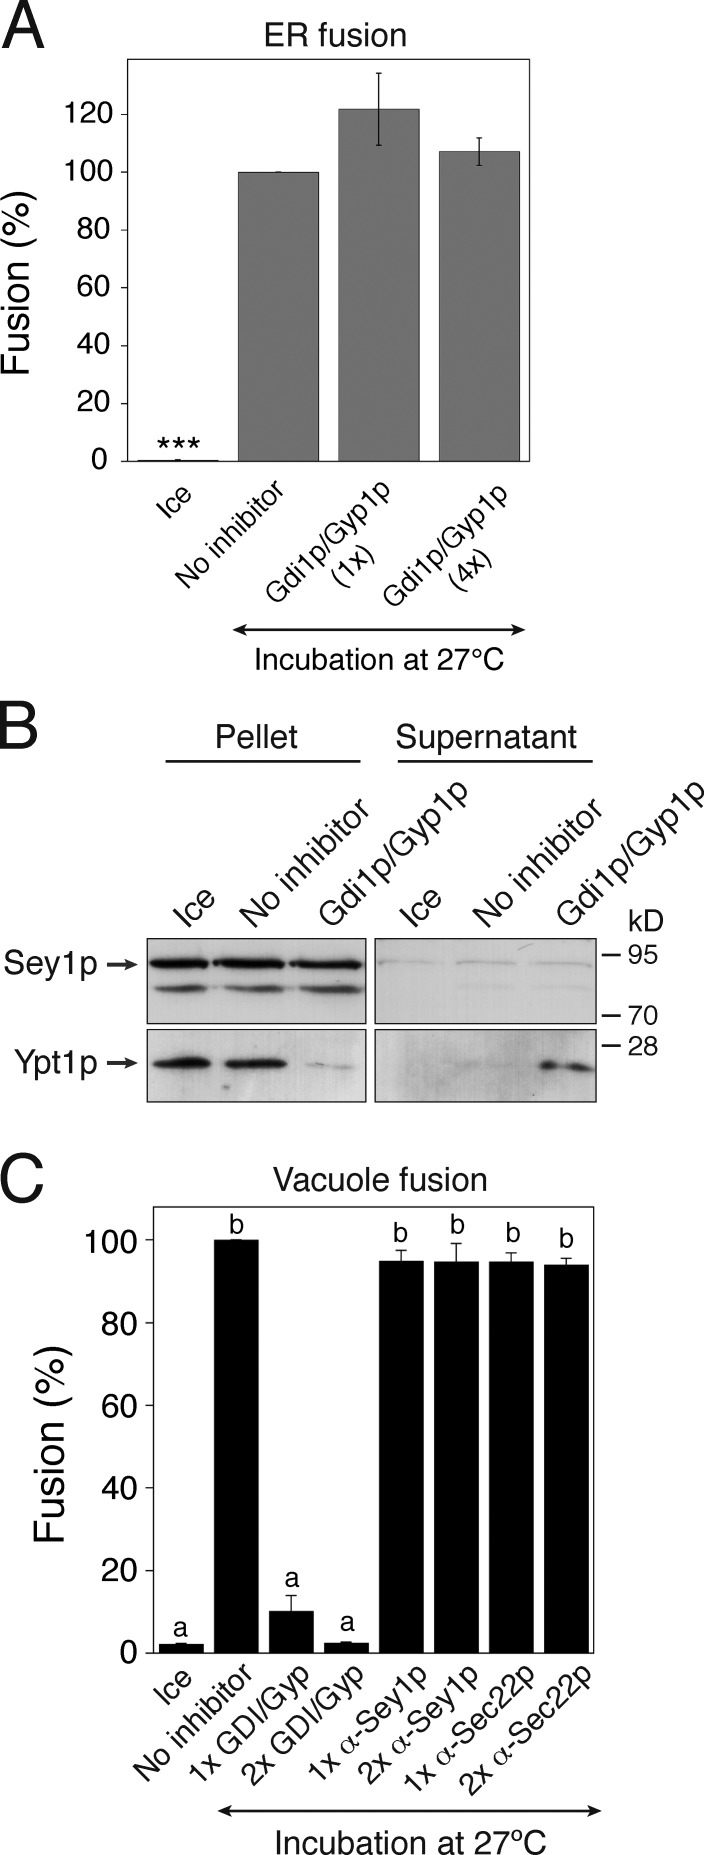 In vitro homotypic ER fusion is Rab independent. (A) Homotypic ER fusion is insensitive to Rab inhibition by Gdi1p/Gyp1p. Gluc1 and Gluc2 microsomes were incubated on ice or at 27°C with ATP/GTP in the absence or presence of his 6 -Gdi1p and his 6 -Gyp1p for 90 min. For 1×Gdi1p/Gyp1p, the concentrations of his 6 -Gdi1p and his 6 -Gyp1p were 1.5 and 2.5 µM, respectively; the corresponding concentrations for 4×Gdi1p/Gyp1p were 6 and 10 µM, respectively. Data represent the means ± SEM (error bars; n = 3). ***, P